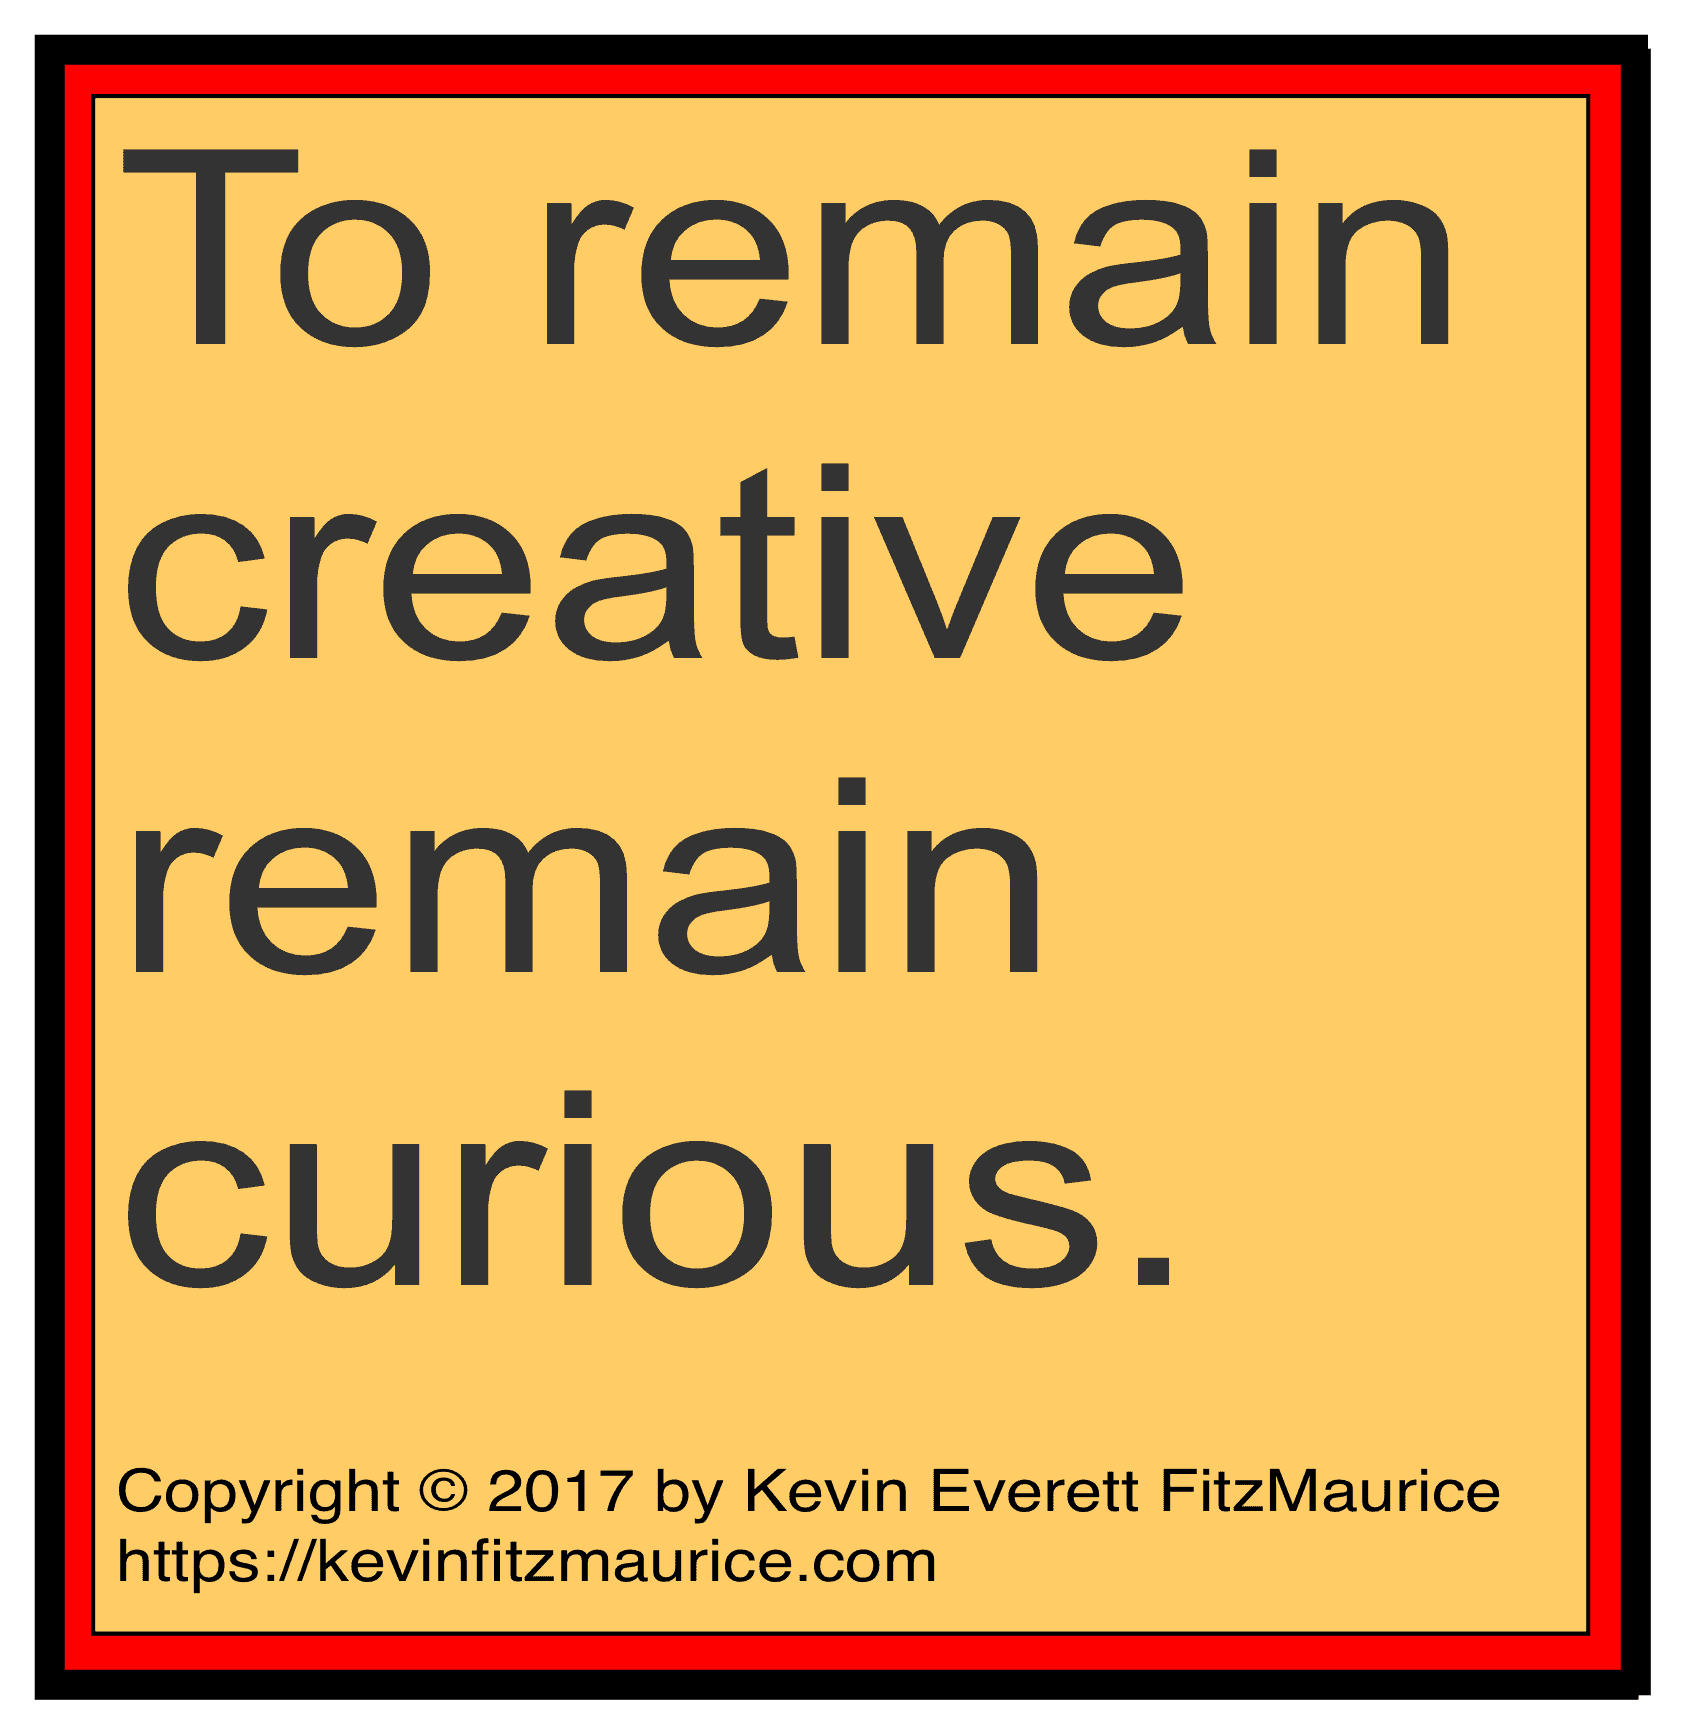 Creativity and curiosity complement each other.